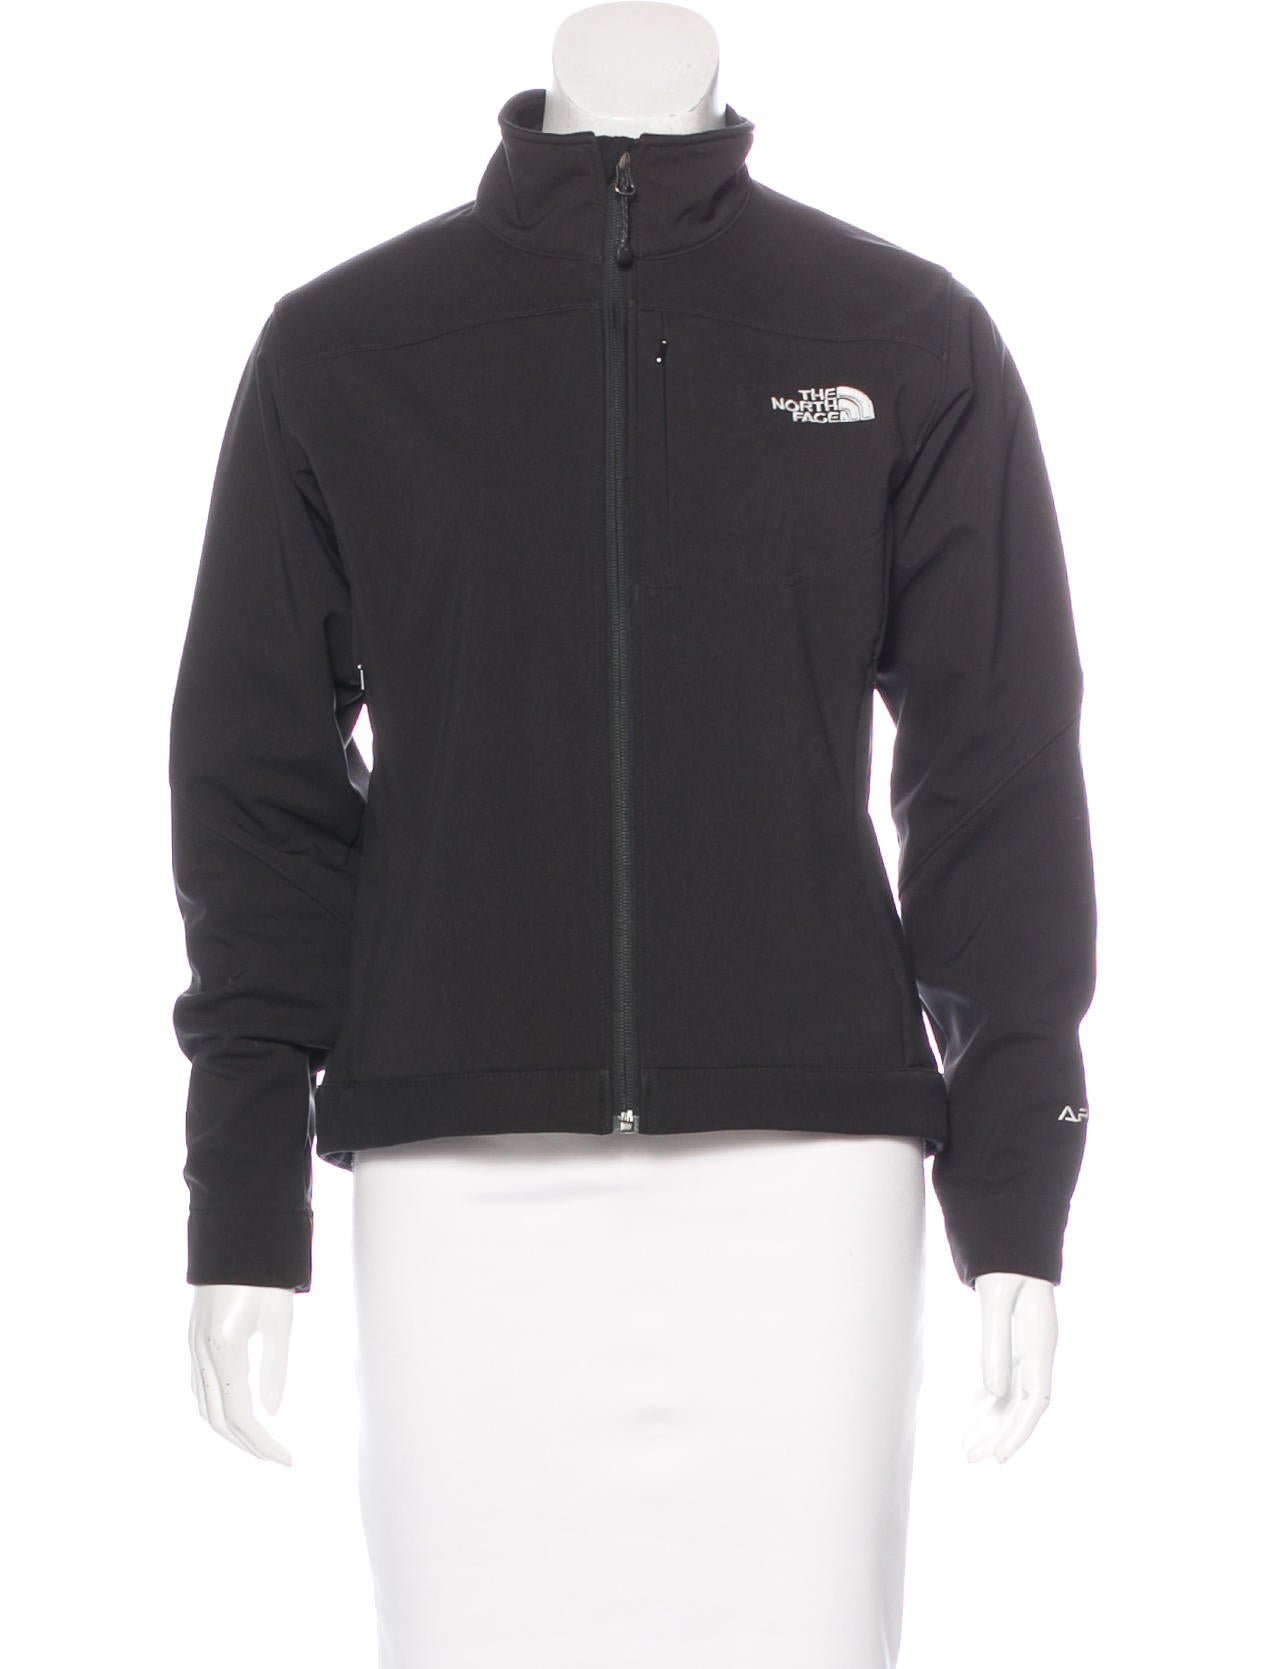 A stylish knit zip-up jacket is a must-have for a fashion-conscious man. /10 (1, reviews)2,,+ followers on Twitter.